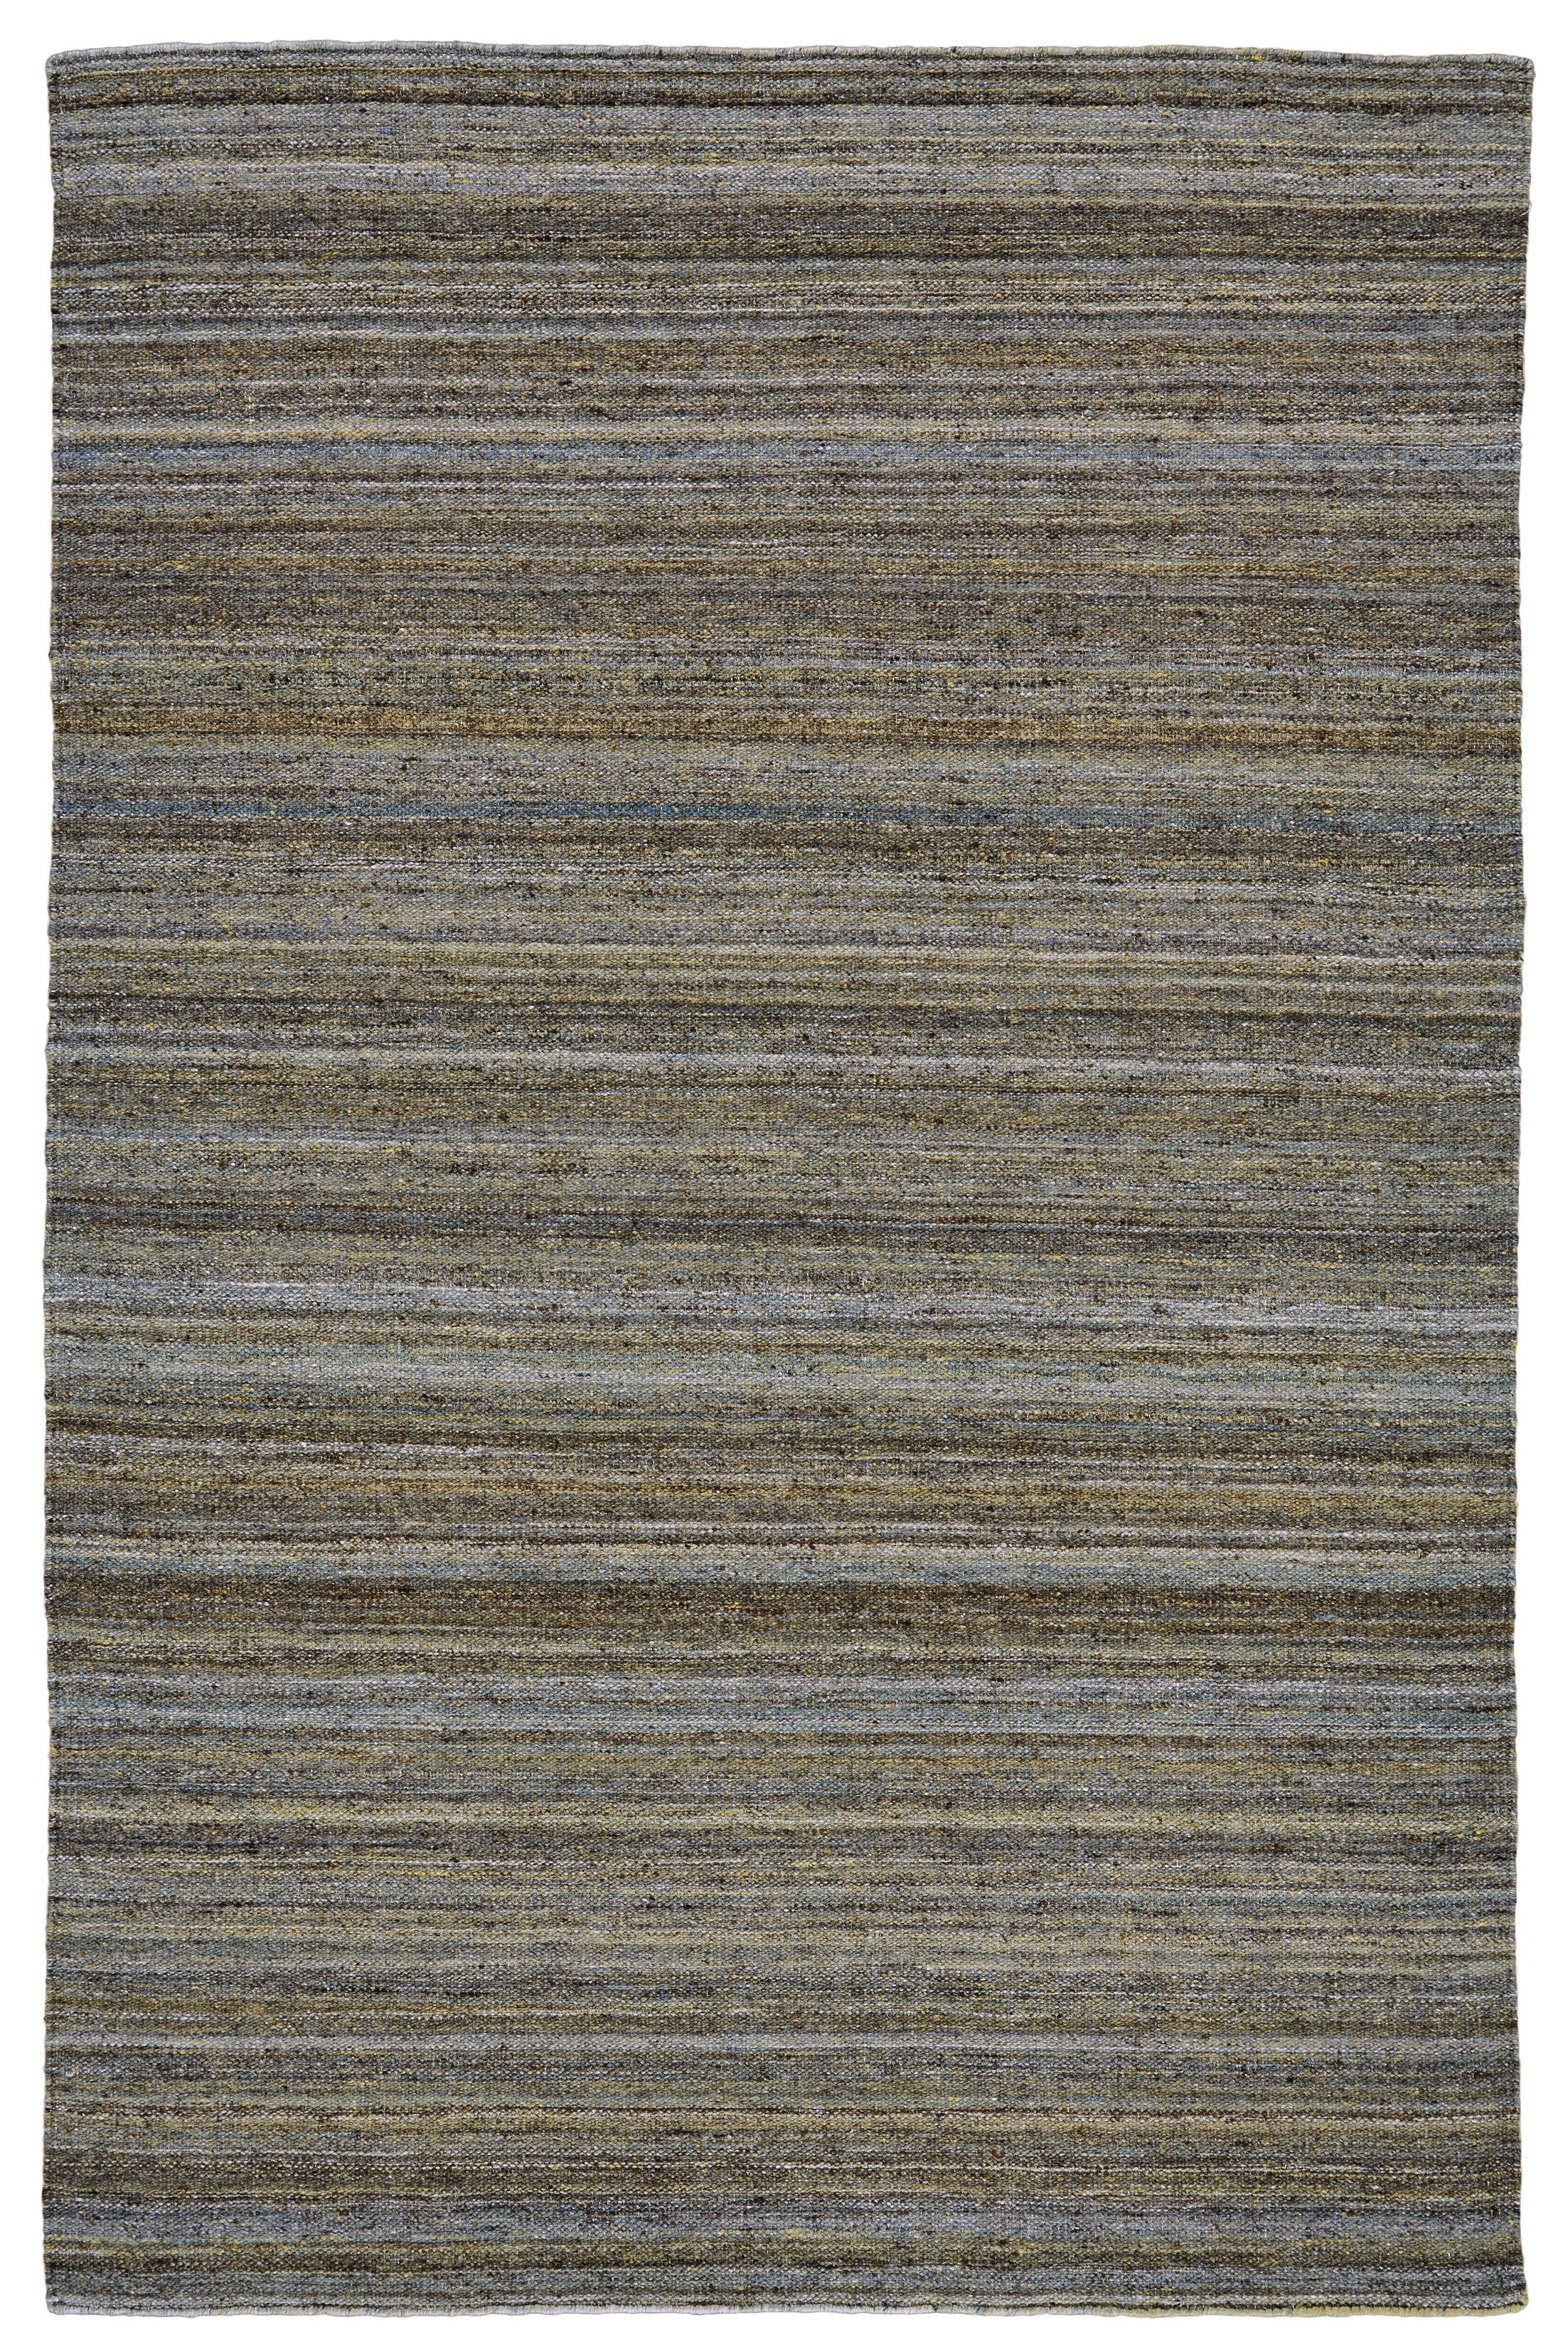 Mcmurtry Hand-Woven Wool Olive Area Rug Rug Size: Rectangle 5' x 8'